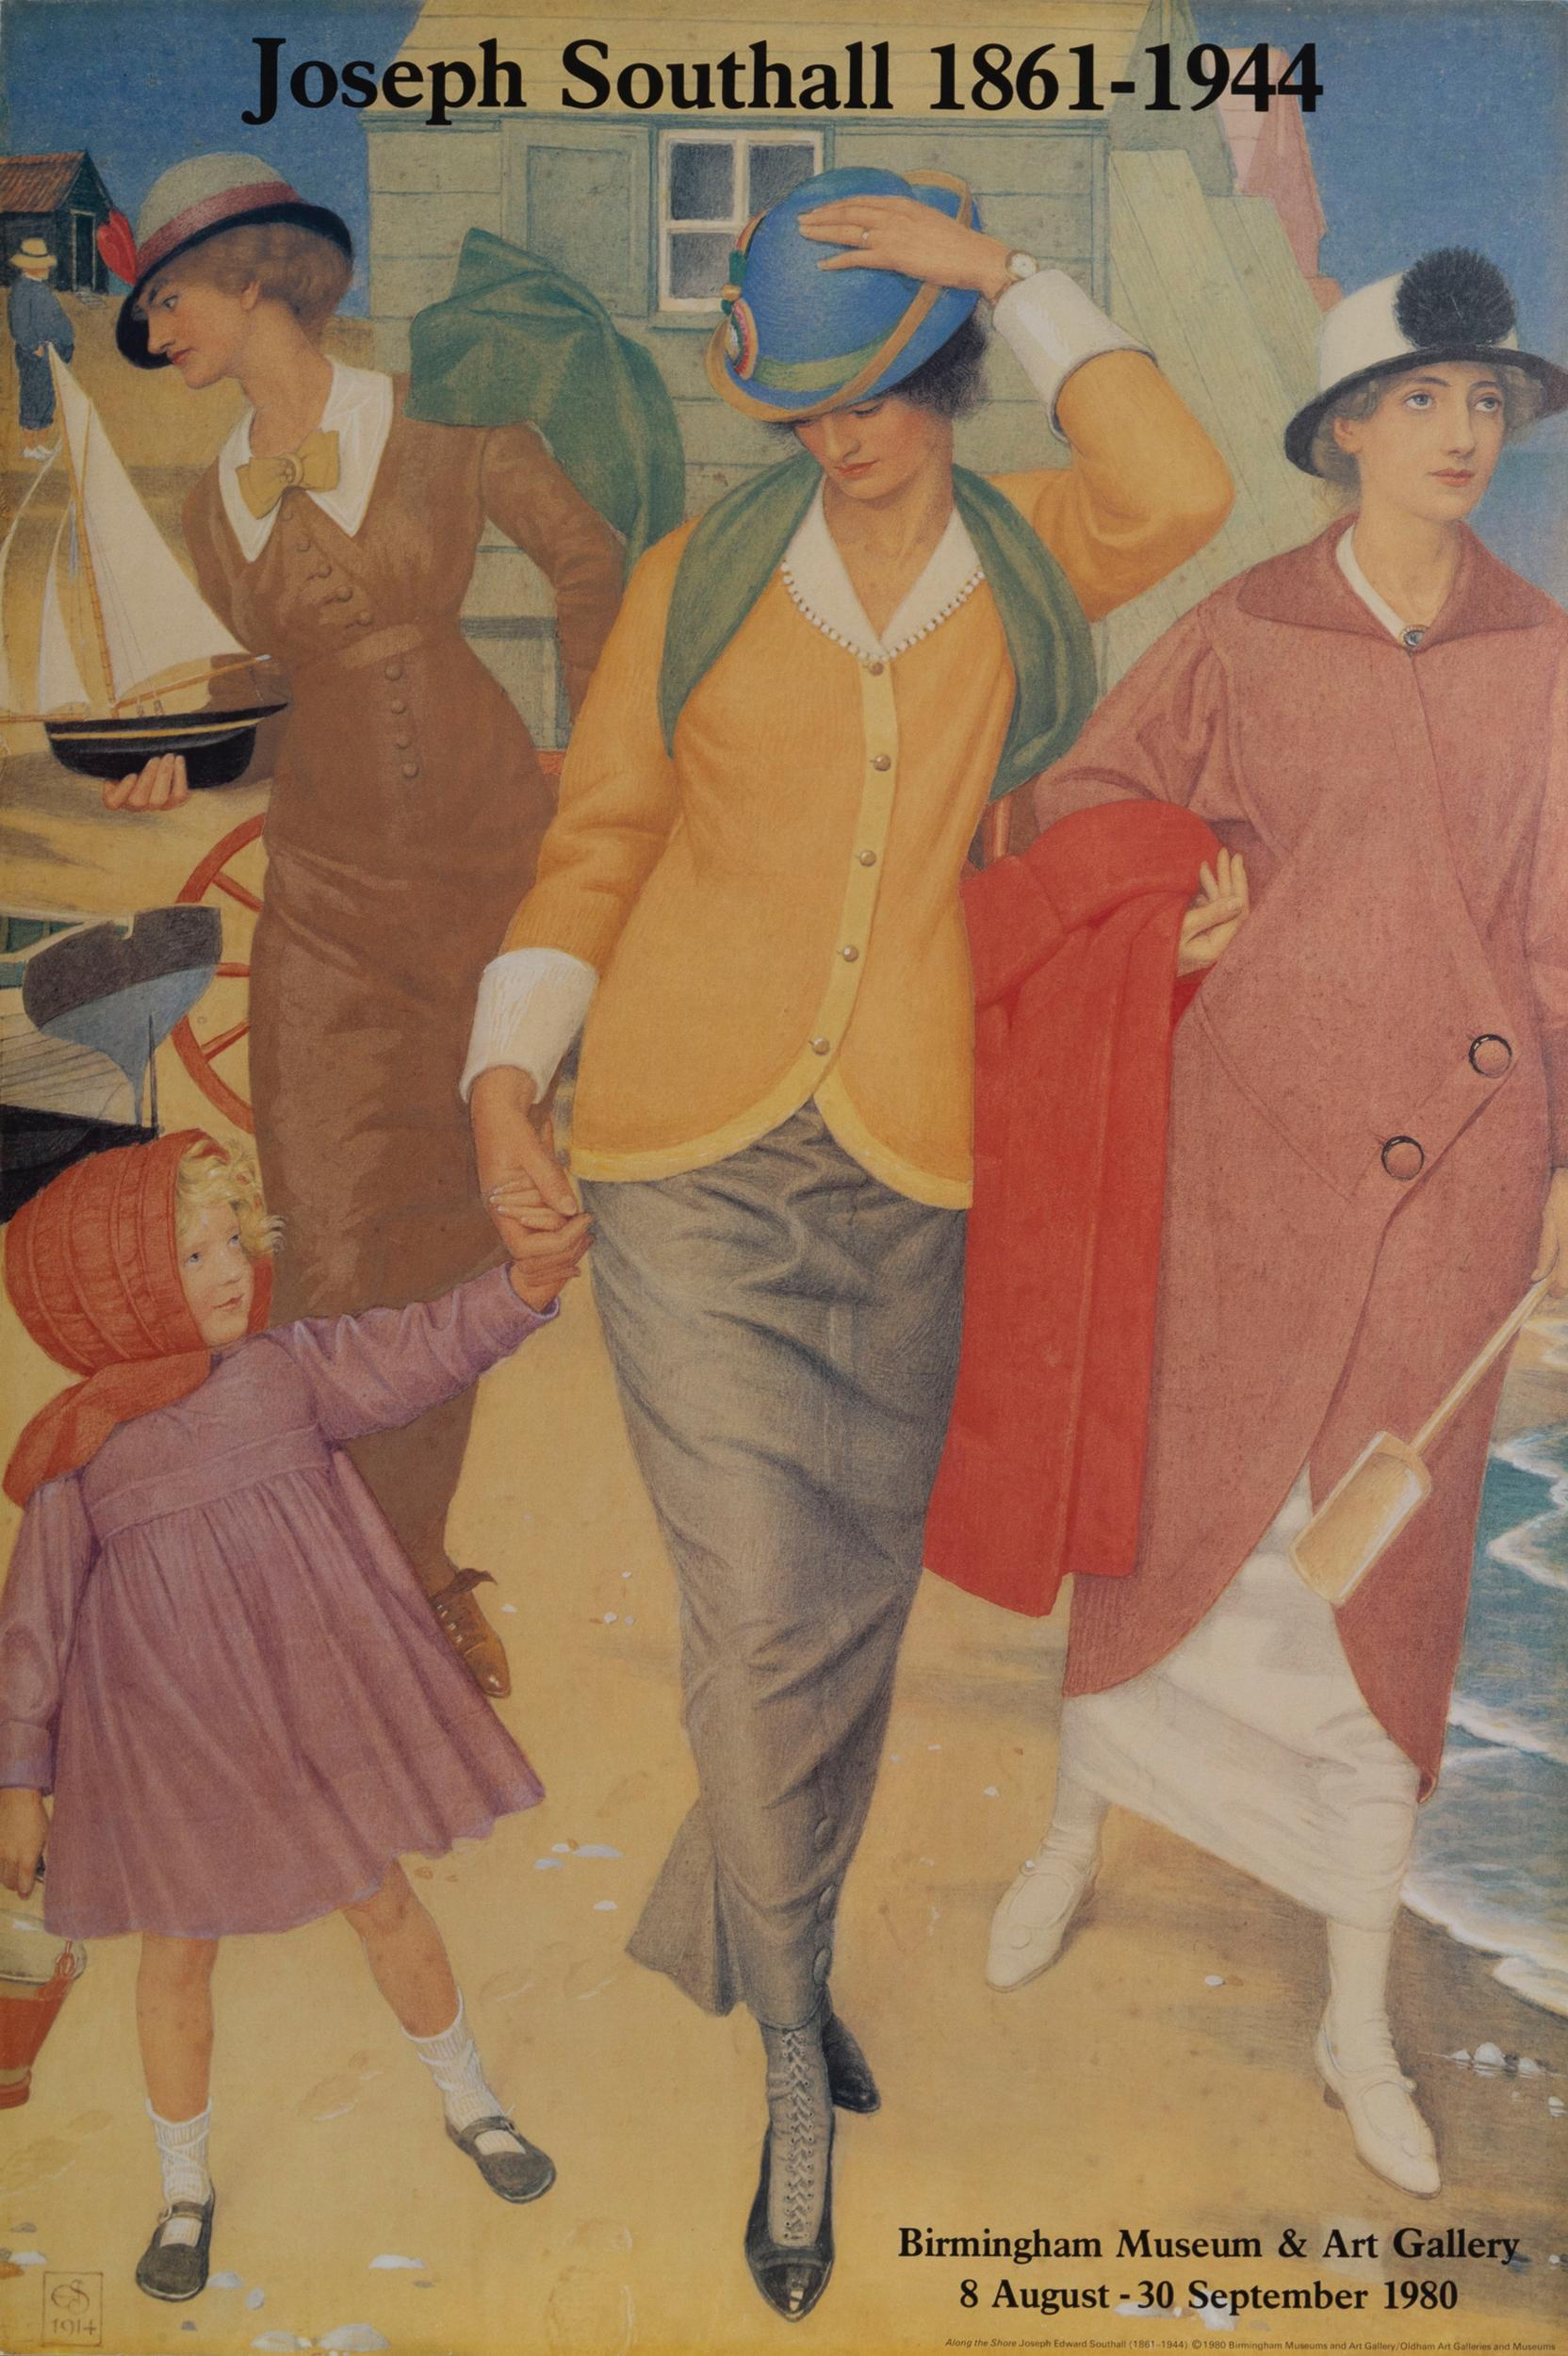 Joseph Southall, Along the Shore - Birmingham Museum and Art Gallery, Poster on board